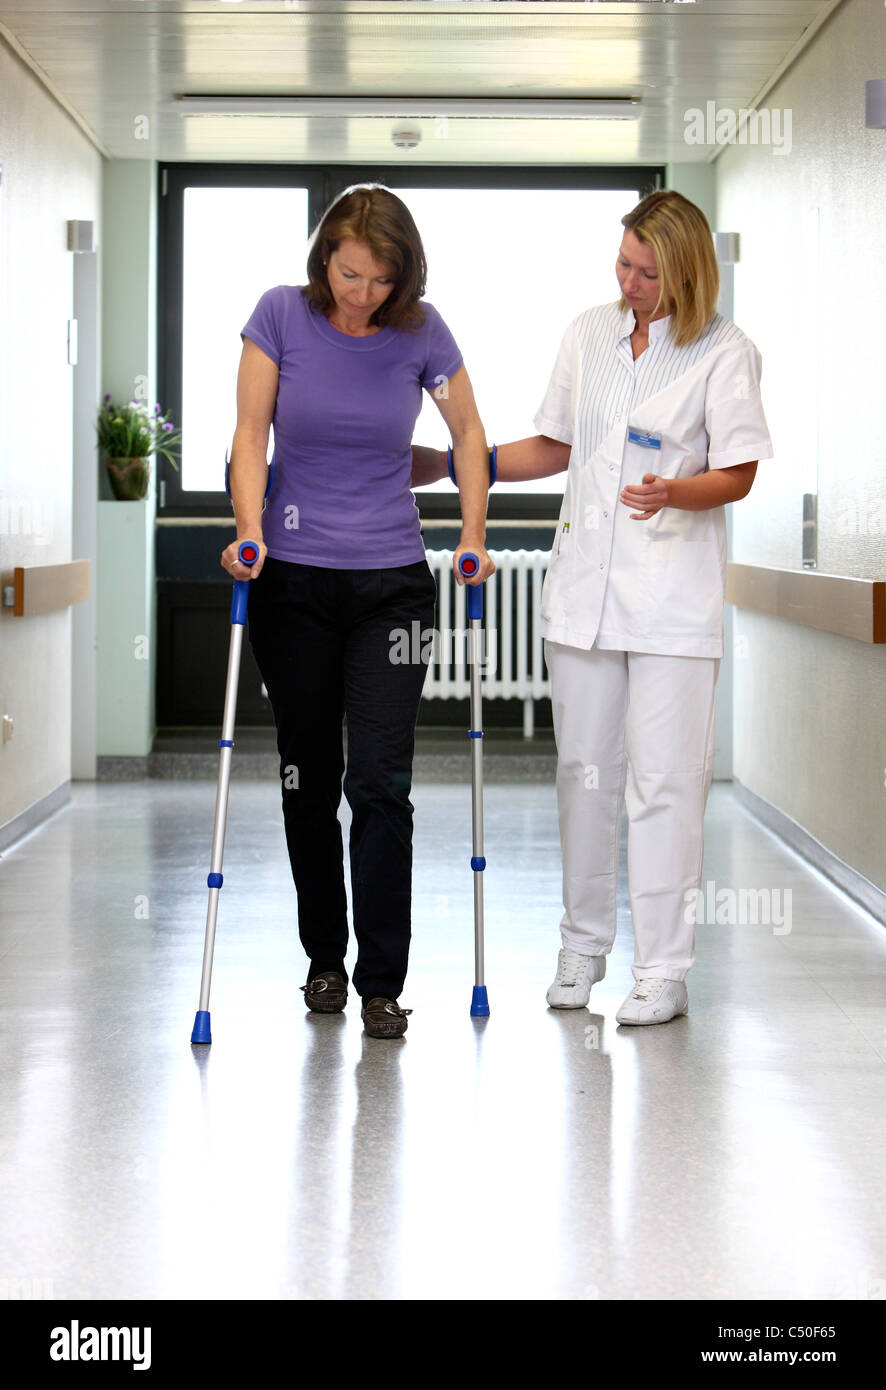 Hospital.Patient is making first steps after surgery, helped by a nurse. - Stock Image